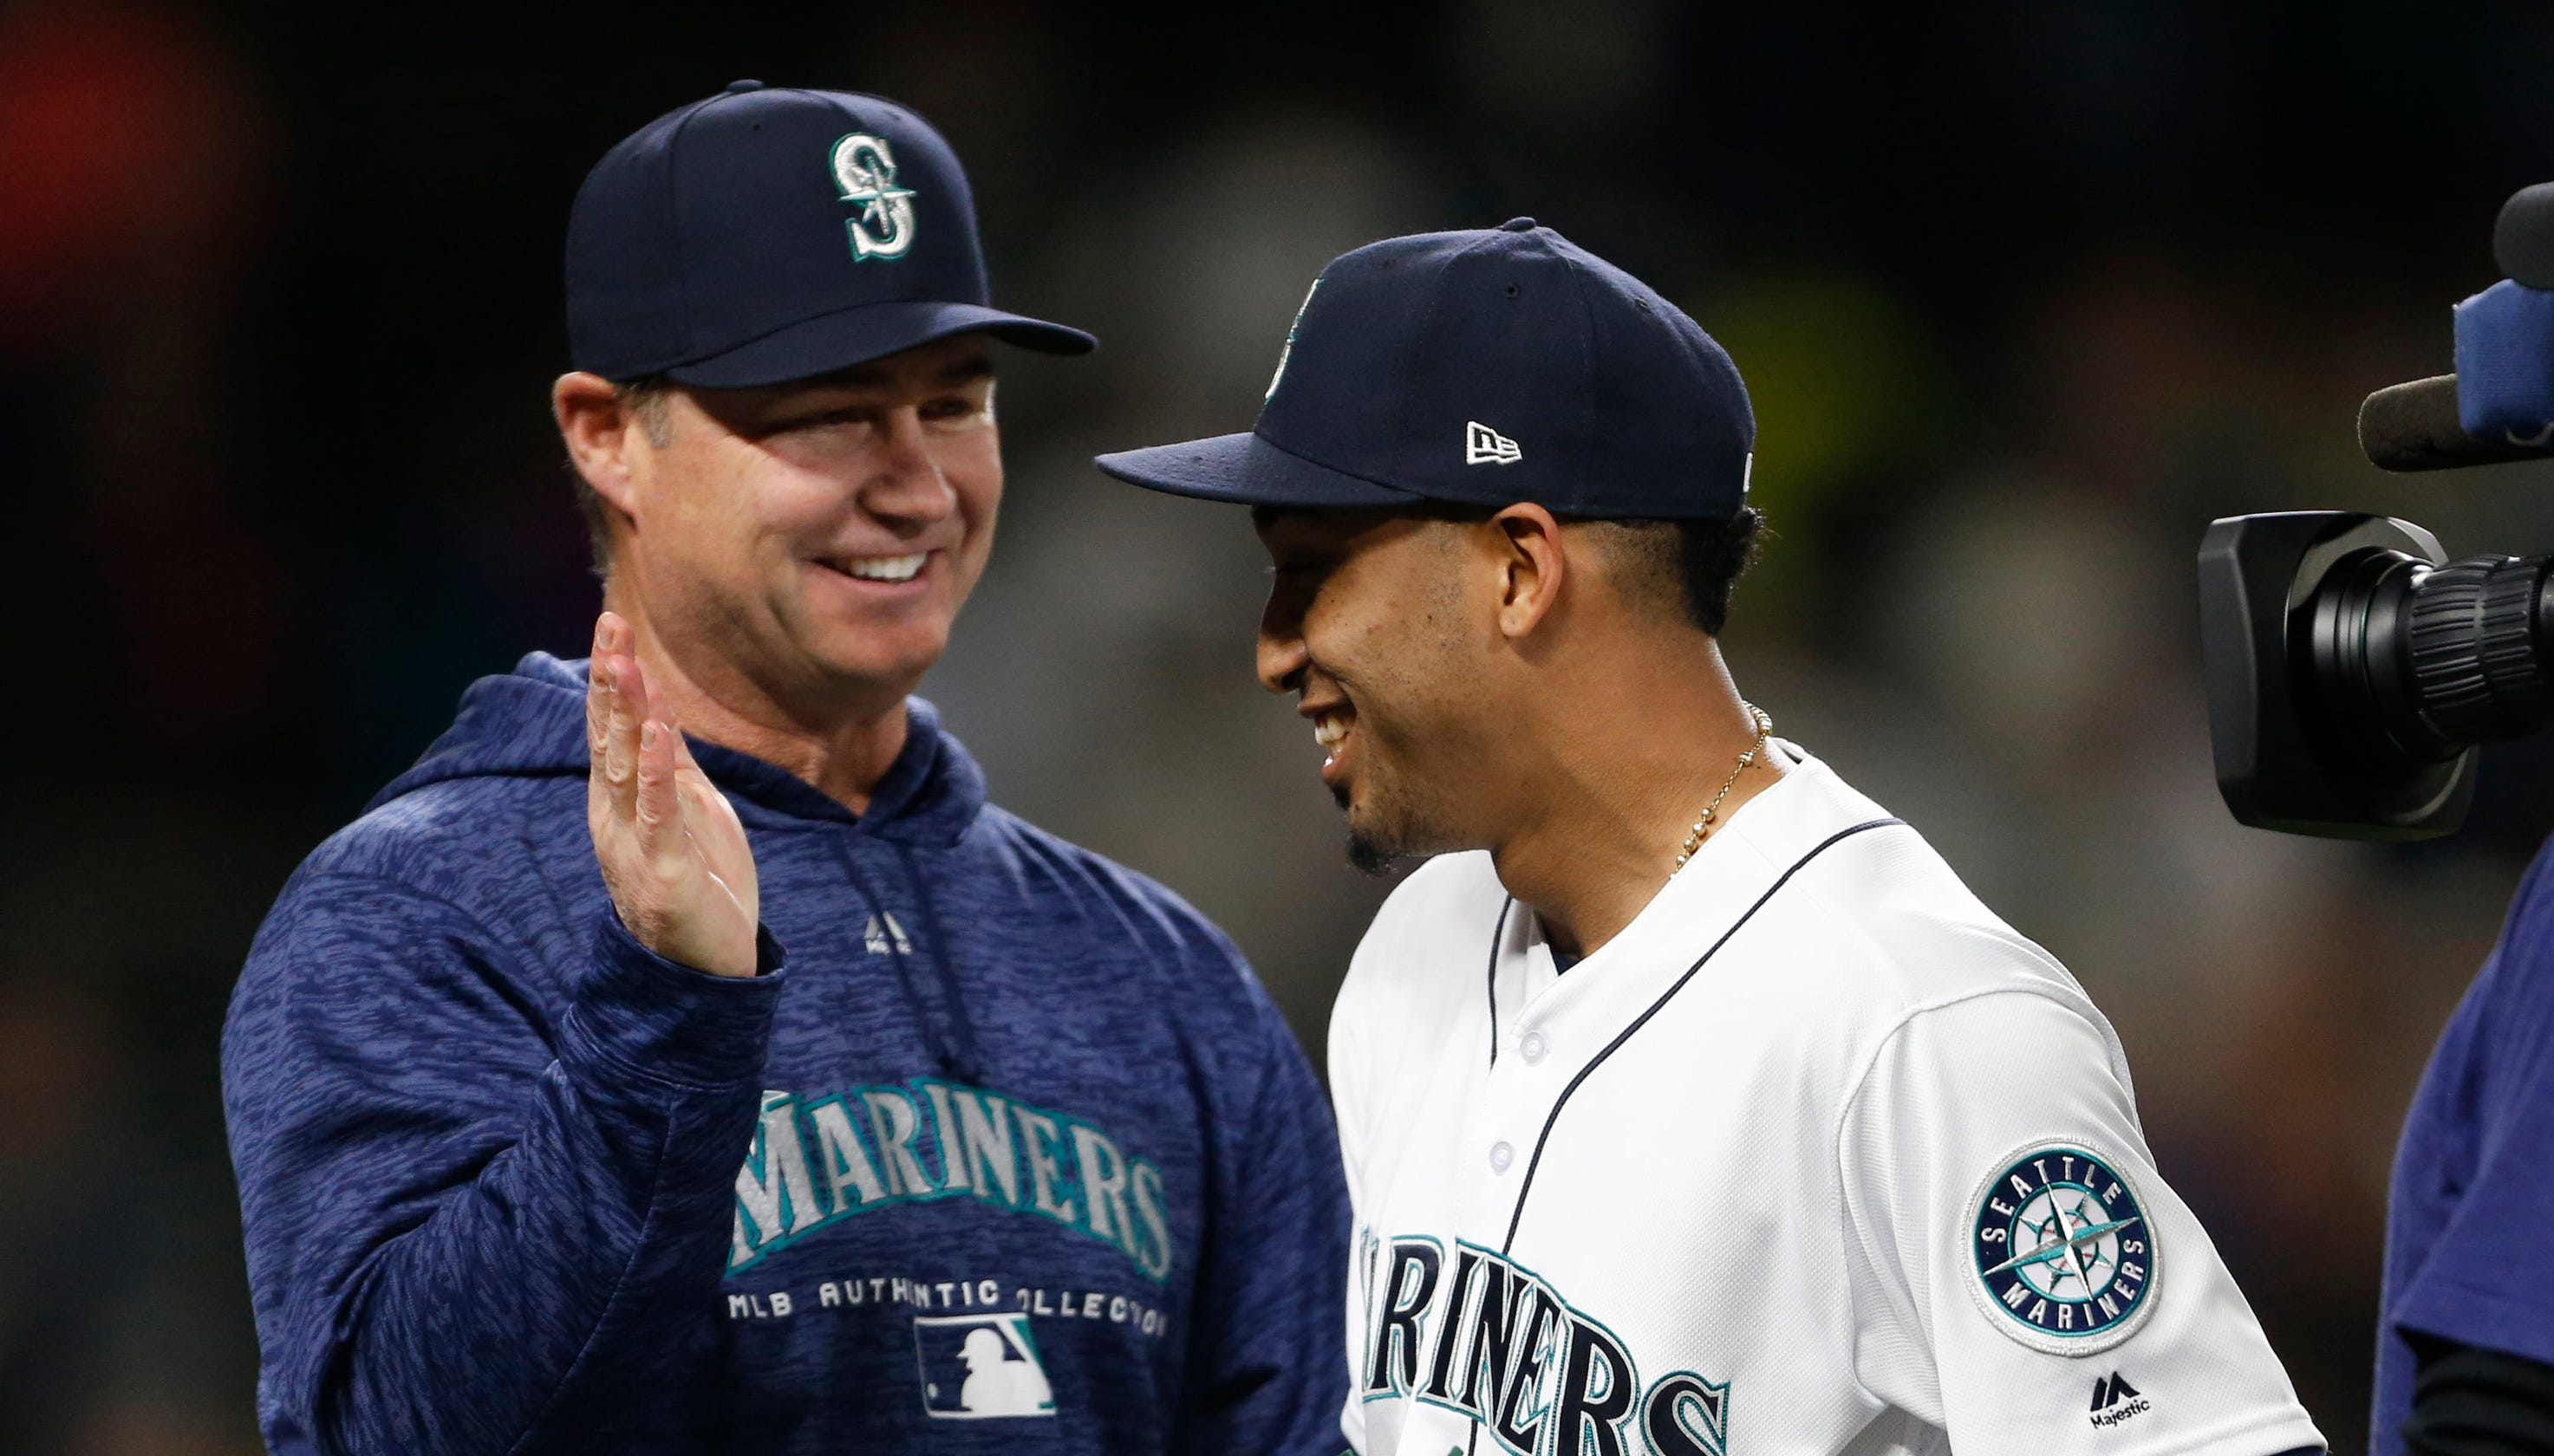 Seattle Mariners Manager Scott Servais Loses Bet Gets Closers Haircut